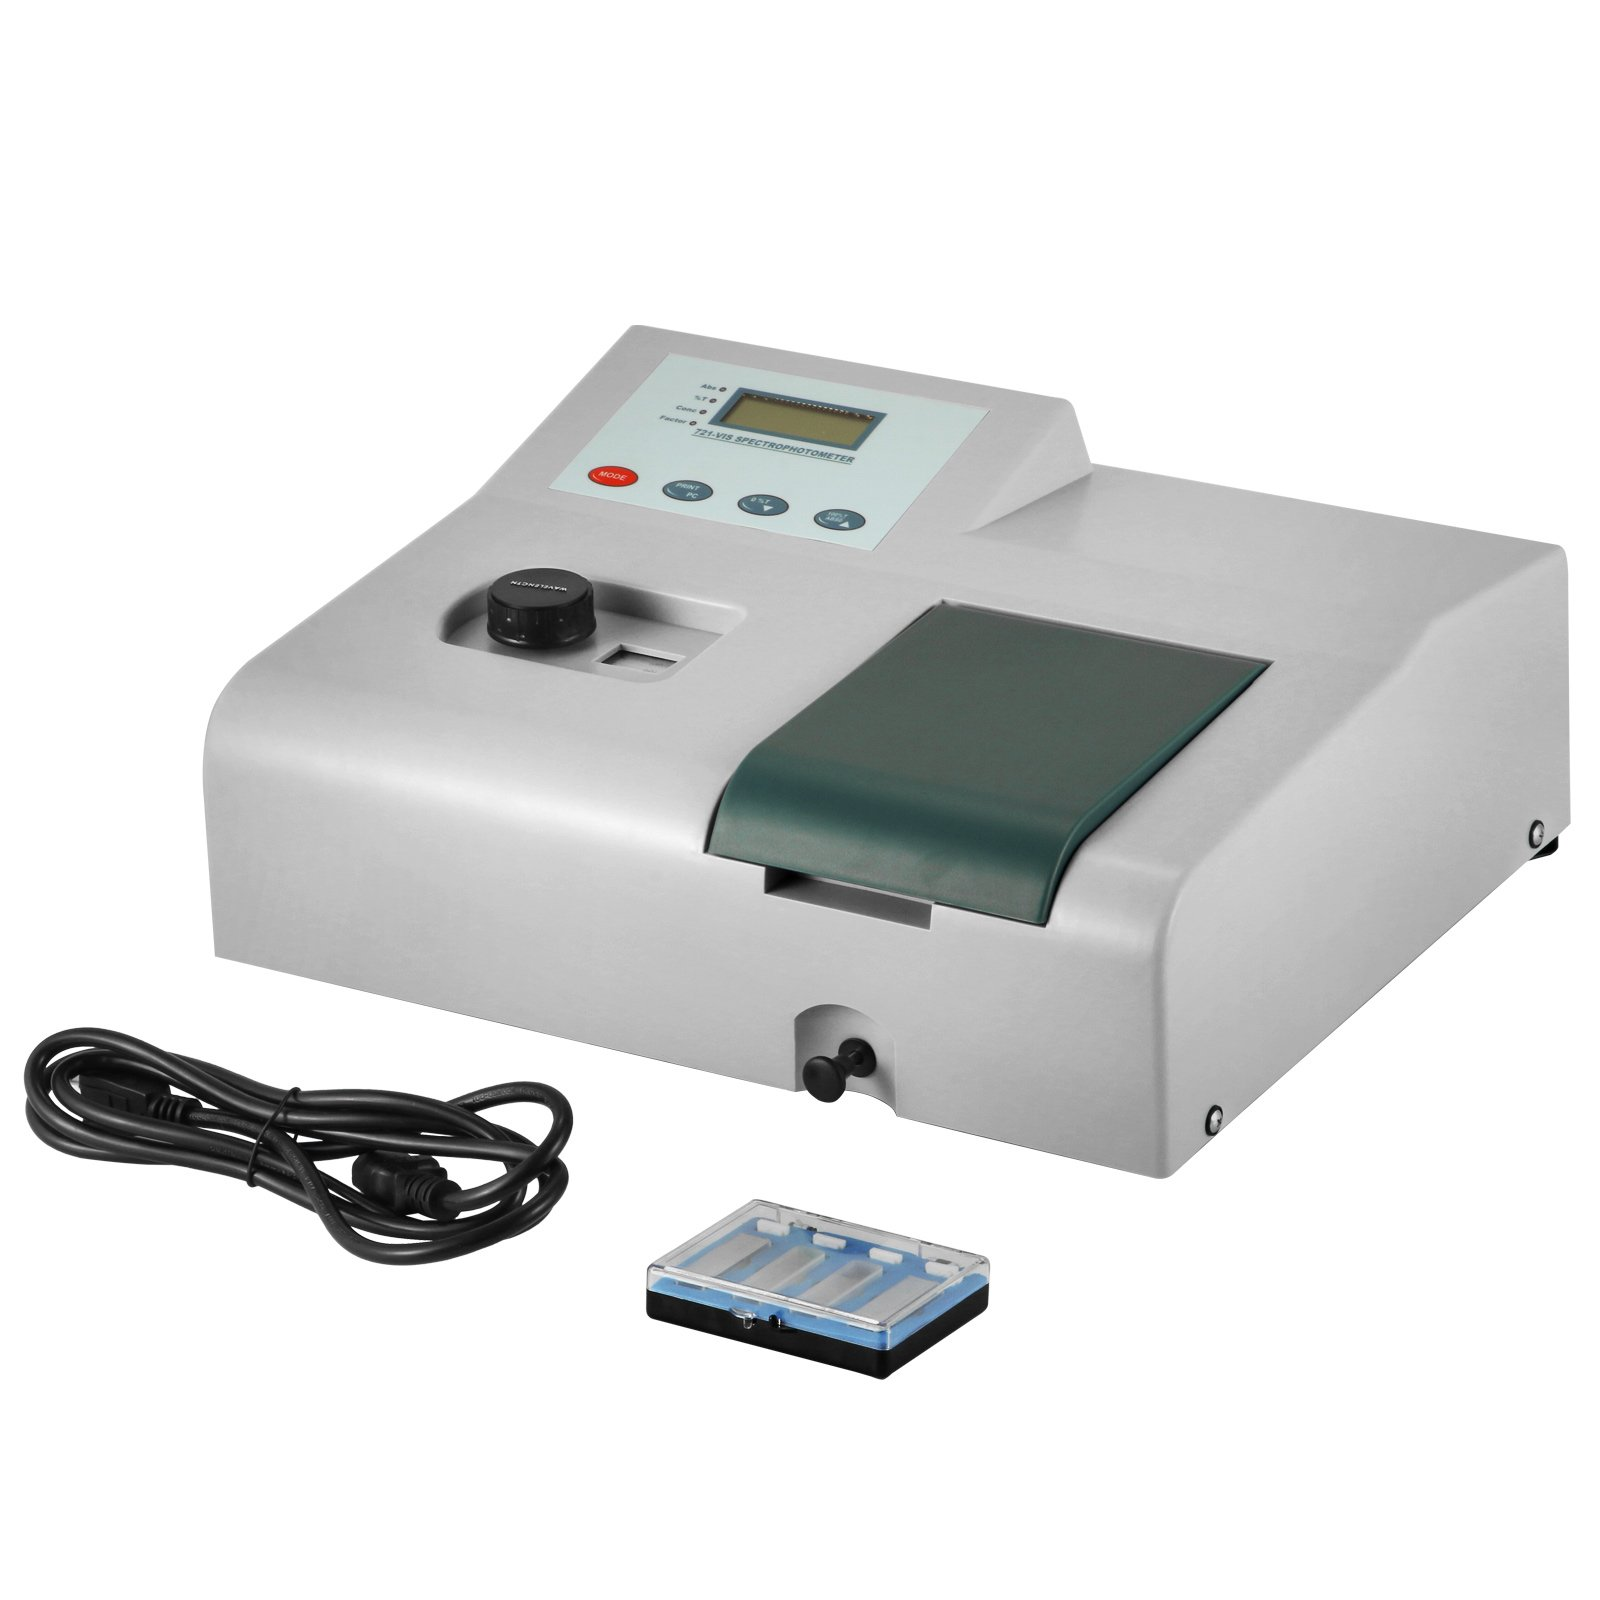 VEVOR Visible Spectrophotometer 721 Spectrophotometer Laboratory Wavelength Range 350 to 1020nm 6nm Tungsten Lamp by VEVOR